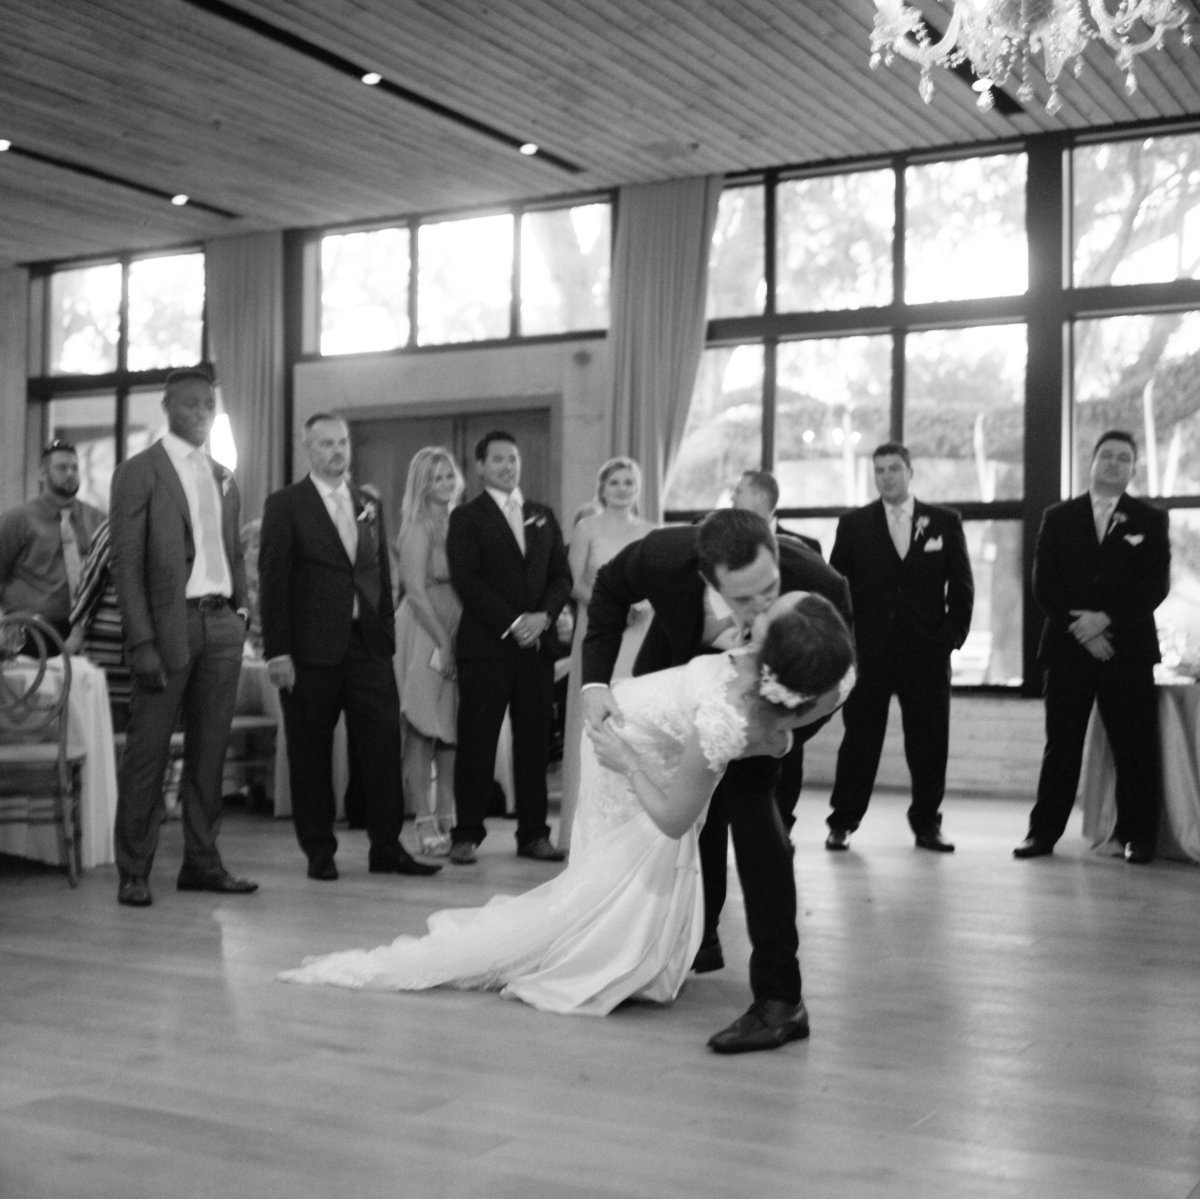 charleston-wedding-venues-middleton-place-philip-casey-photography-105